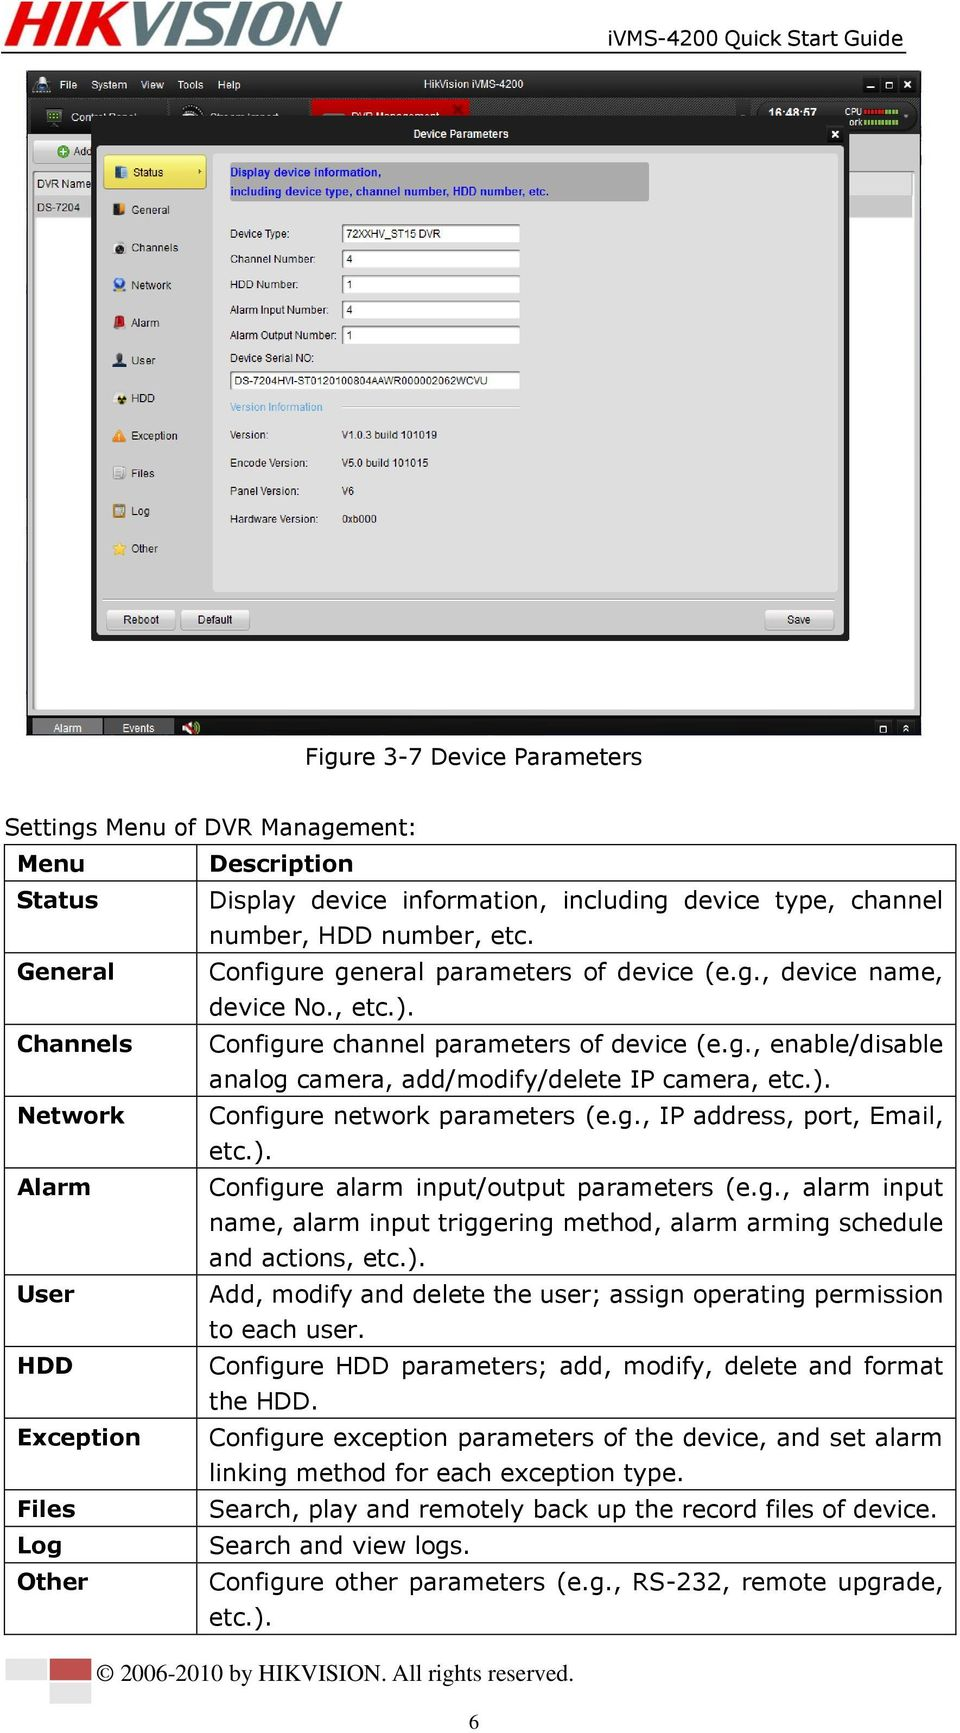 ). Network Configure network parameters (e.g., IP address, port, Email, etc.). Alarm Configure alarm input/output parameters (e.g., alarm input name, alarm input triggering method, alarm arming schedule and actions, etc.